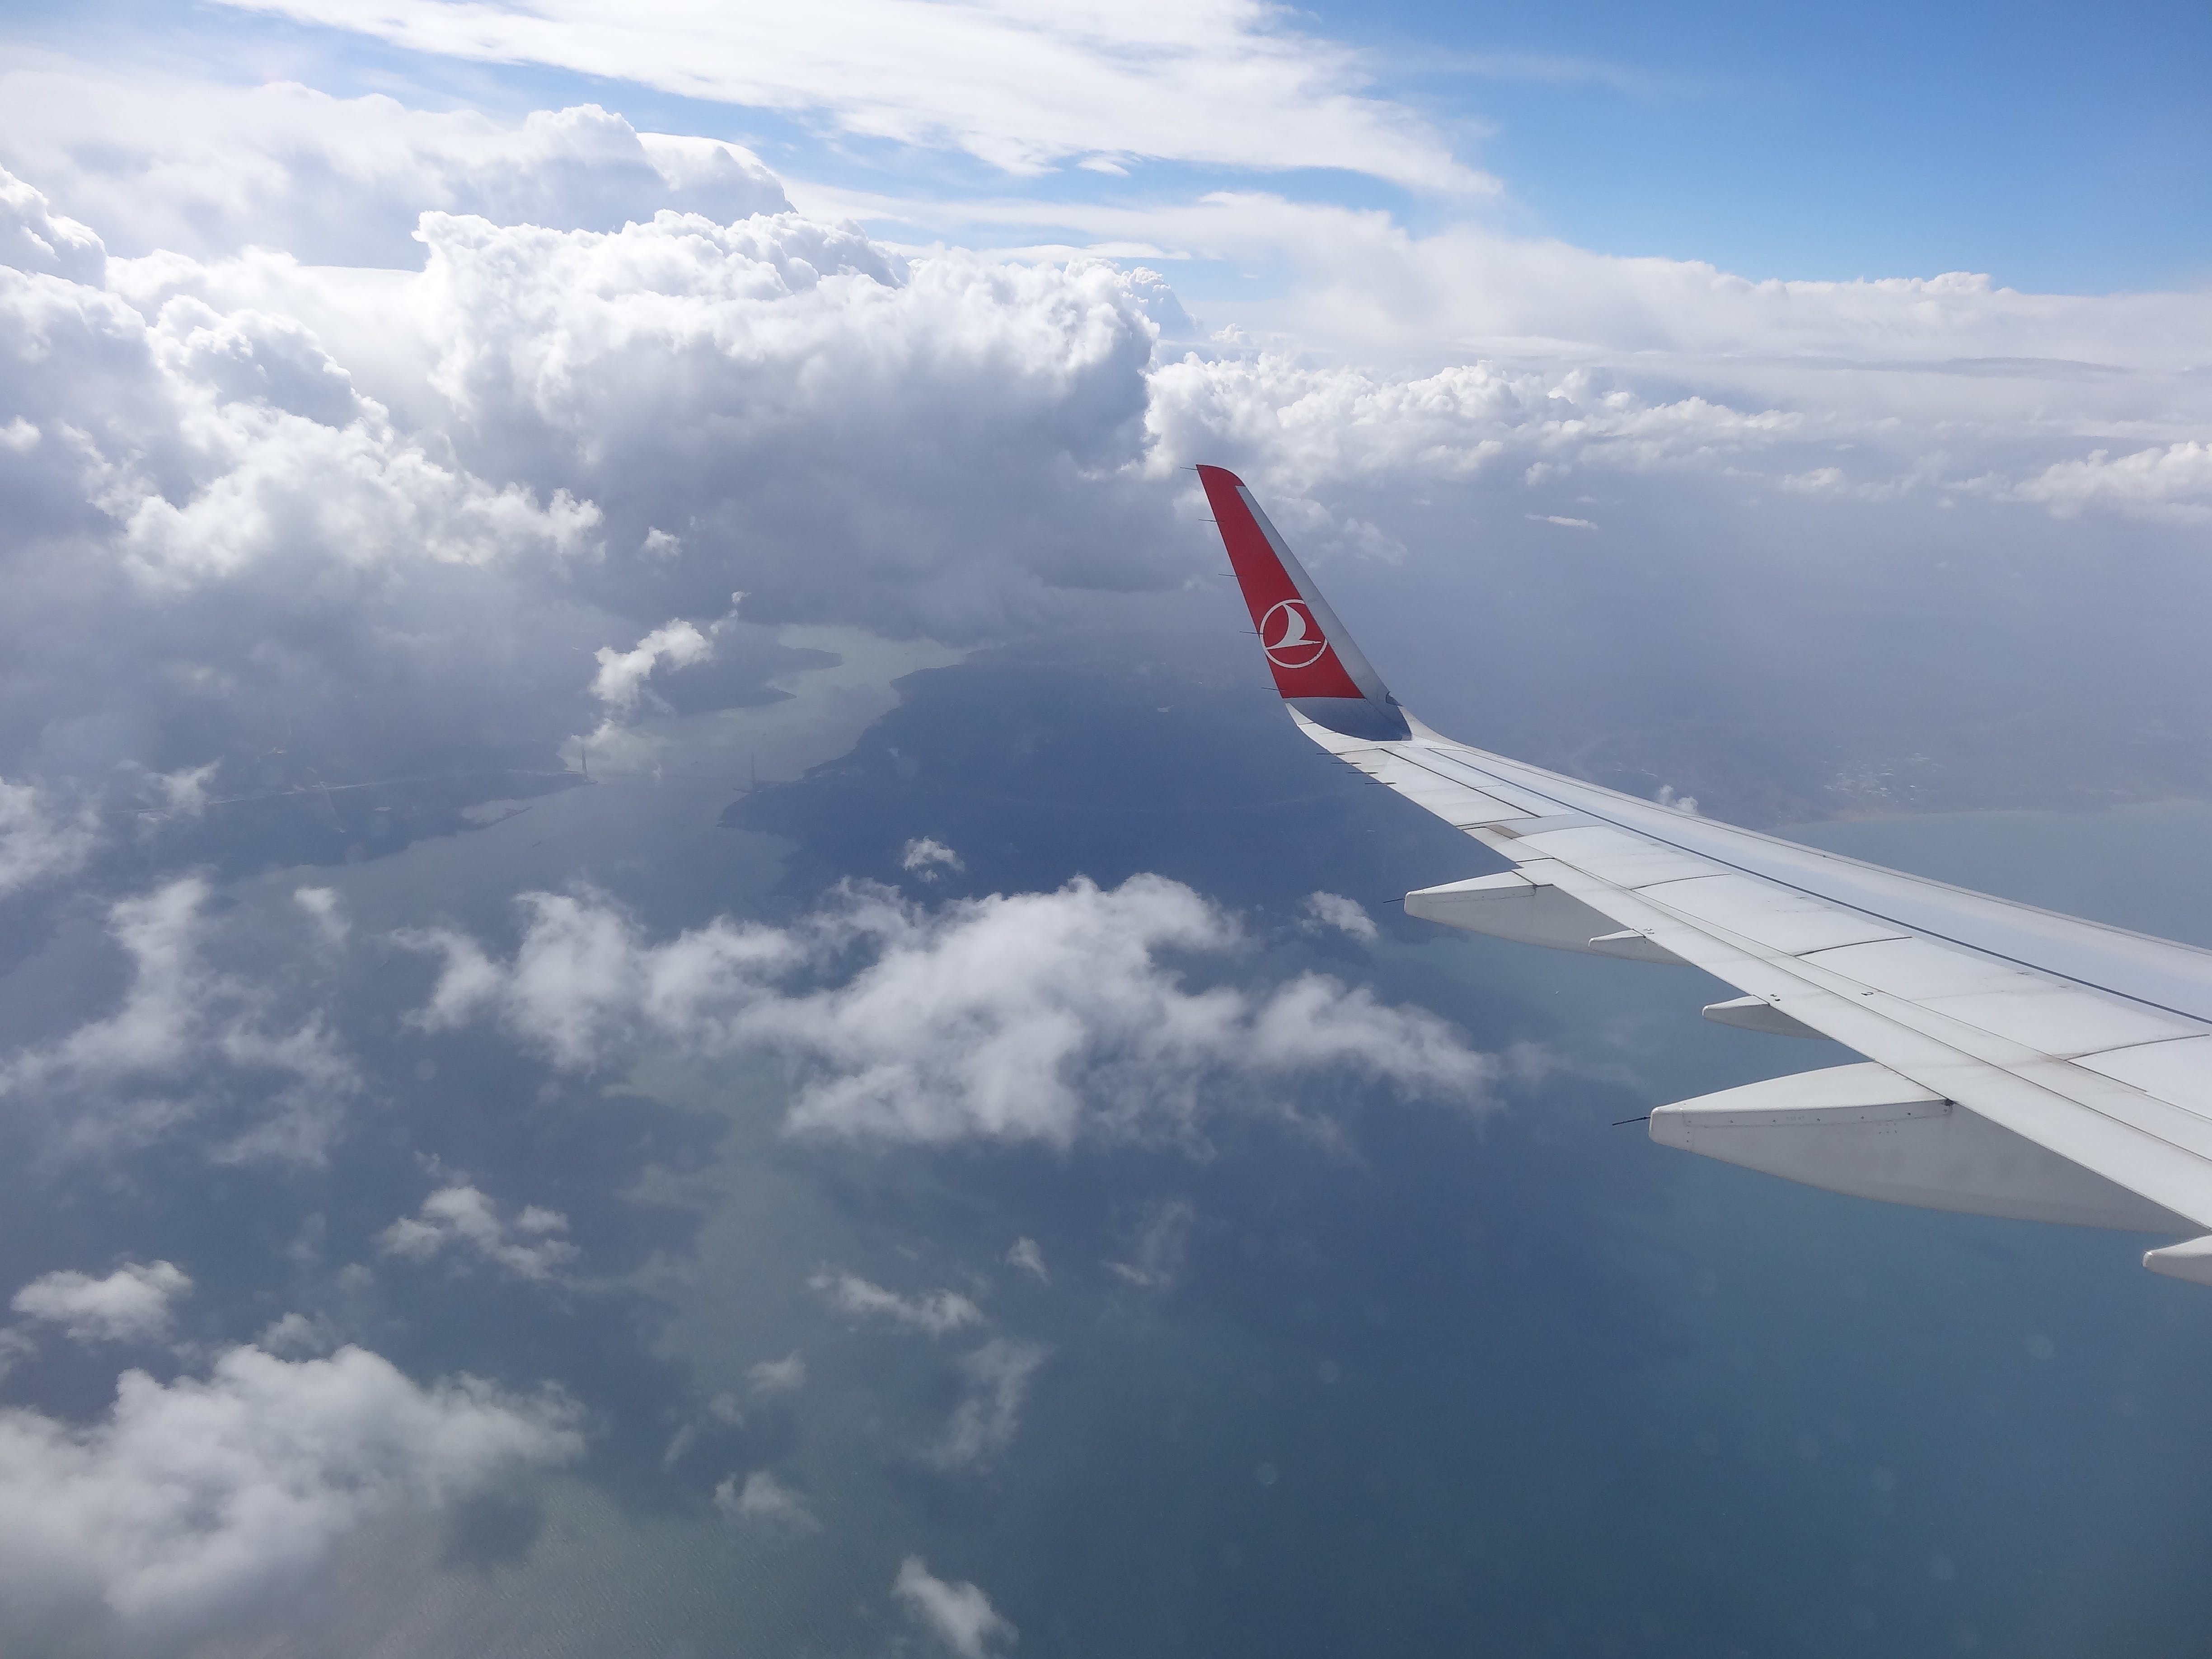 Free stock photo of #notsponsored, airplane, cloud, clouds